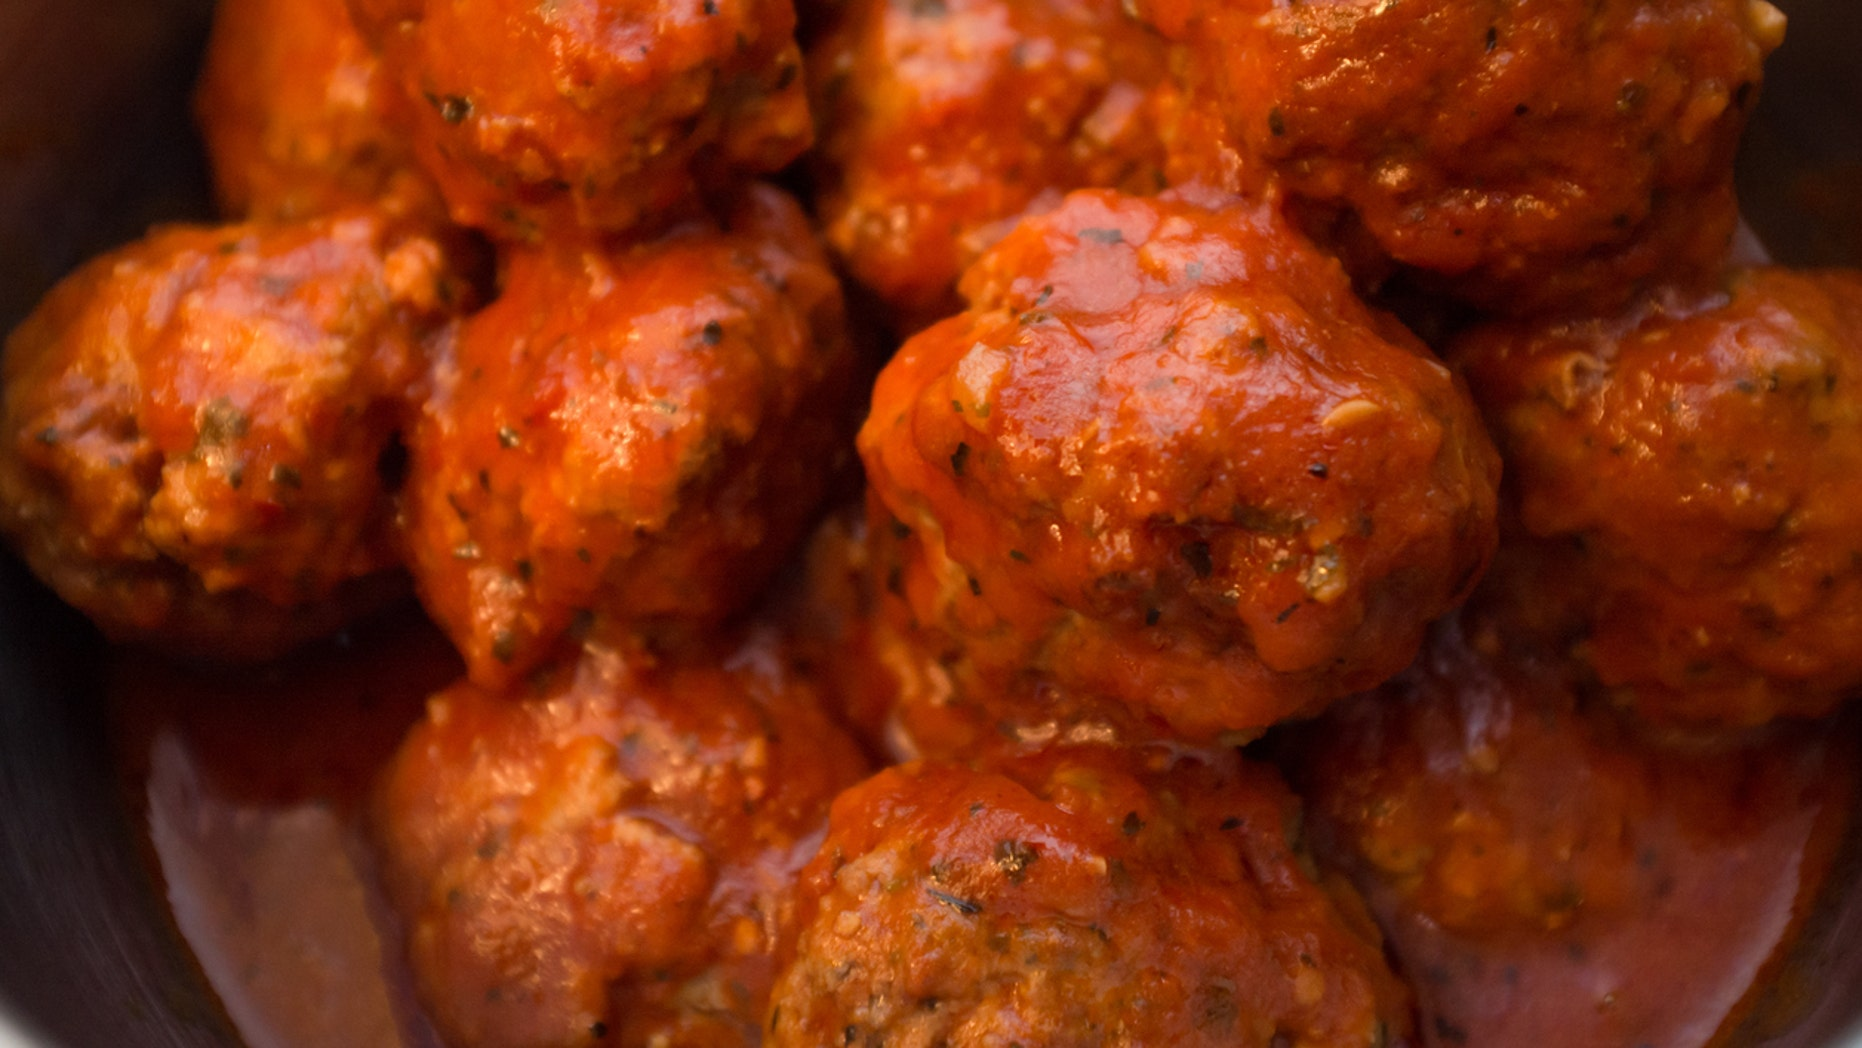 A Pennsylvania man was charged with burglary, criminal trespass and theft by unlawful taking for allegedly swiping a pot of meatballs from another man's garage on Monday.